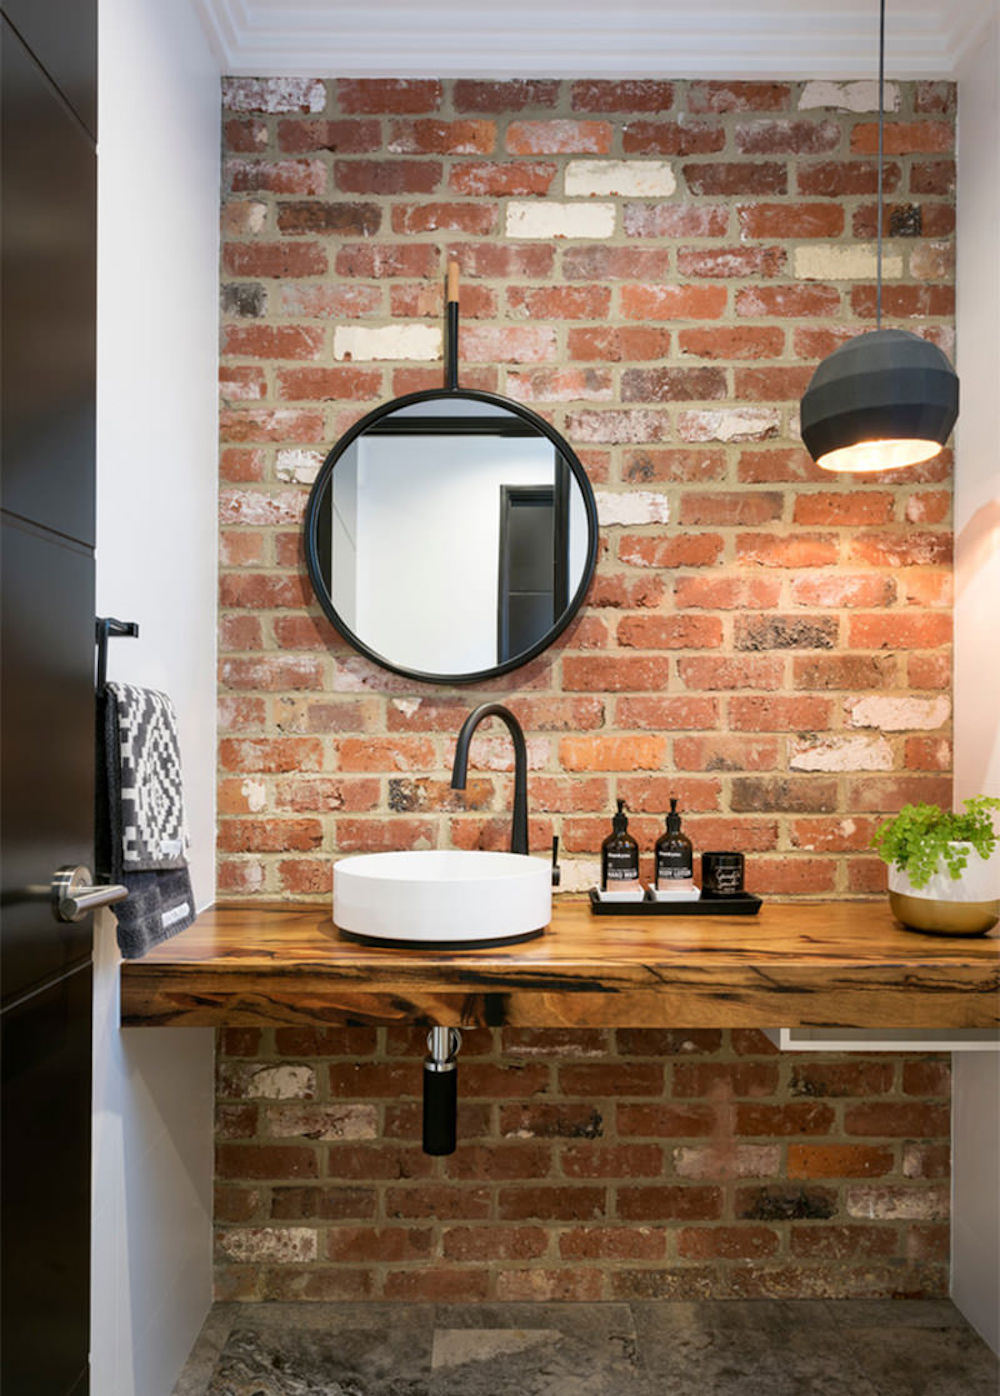 Small bathroom with exposed brick wall